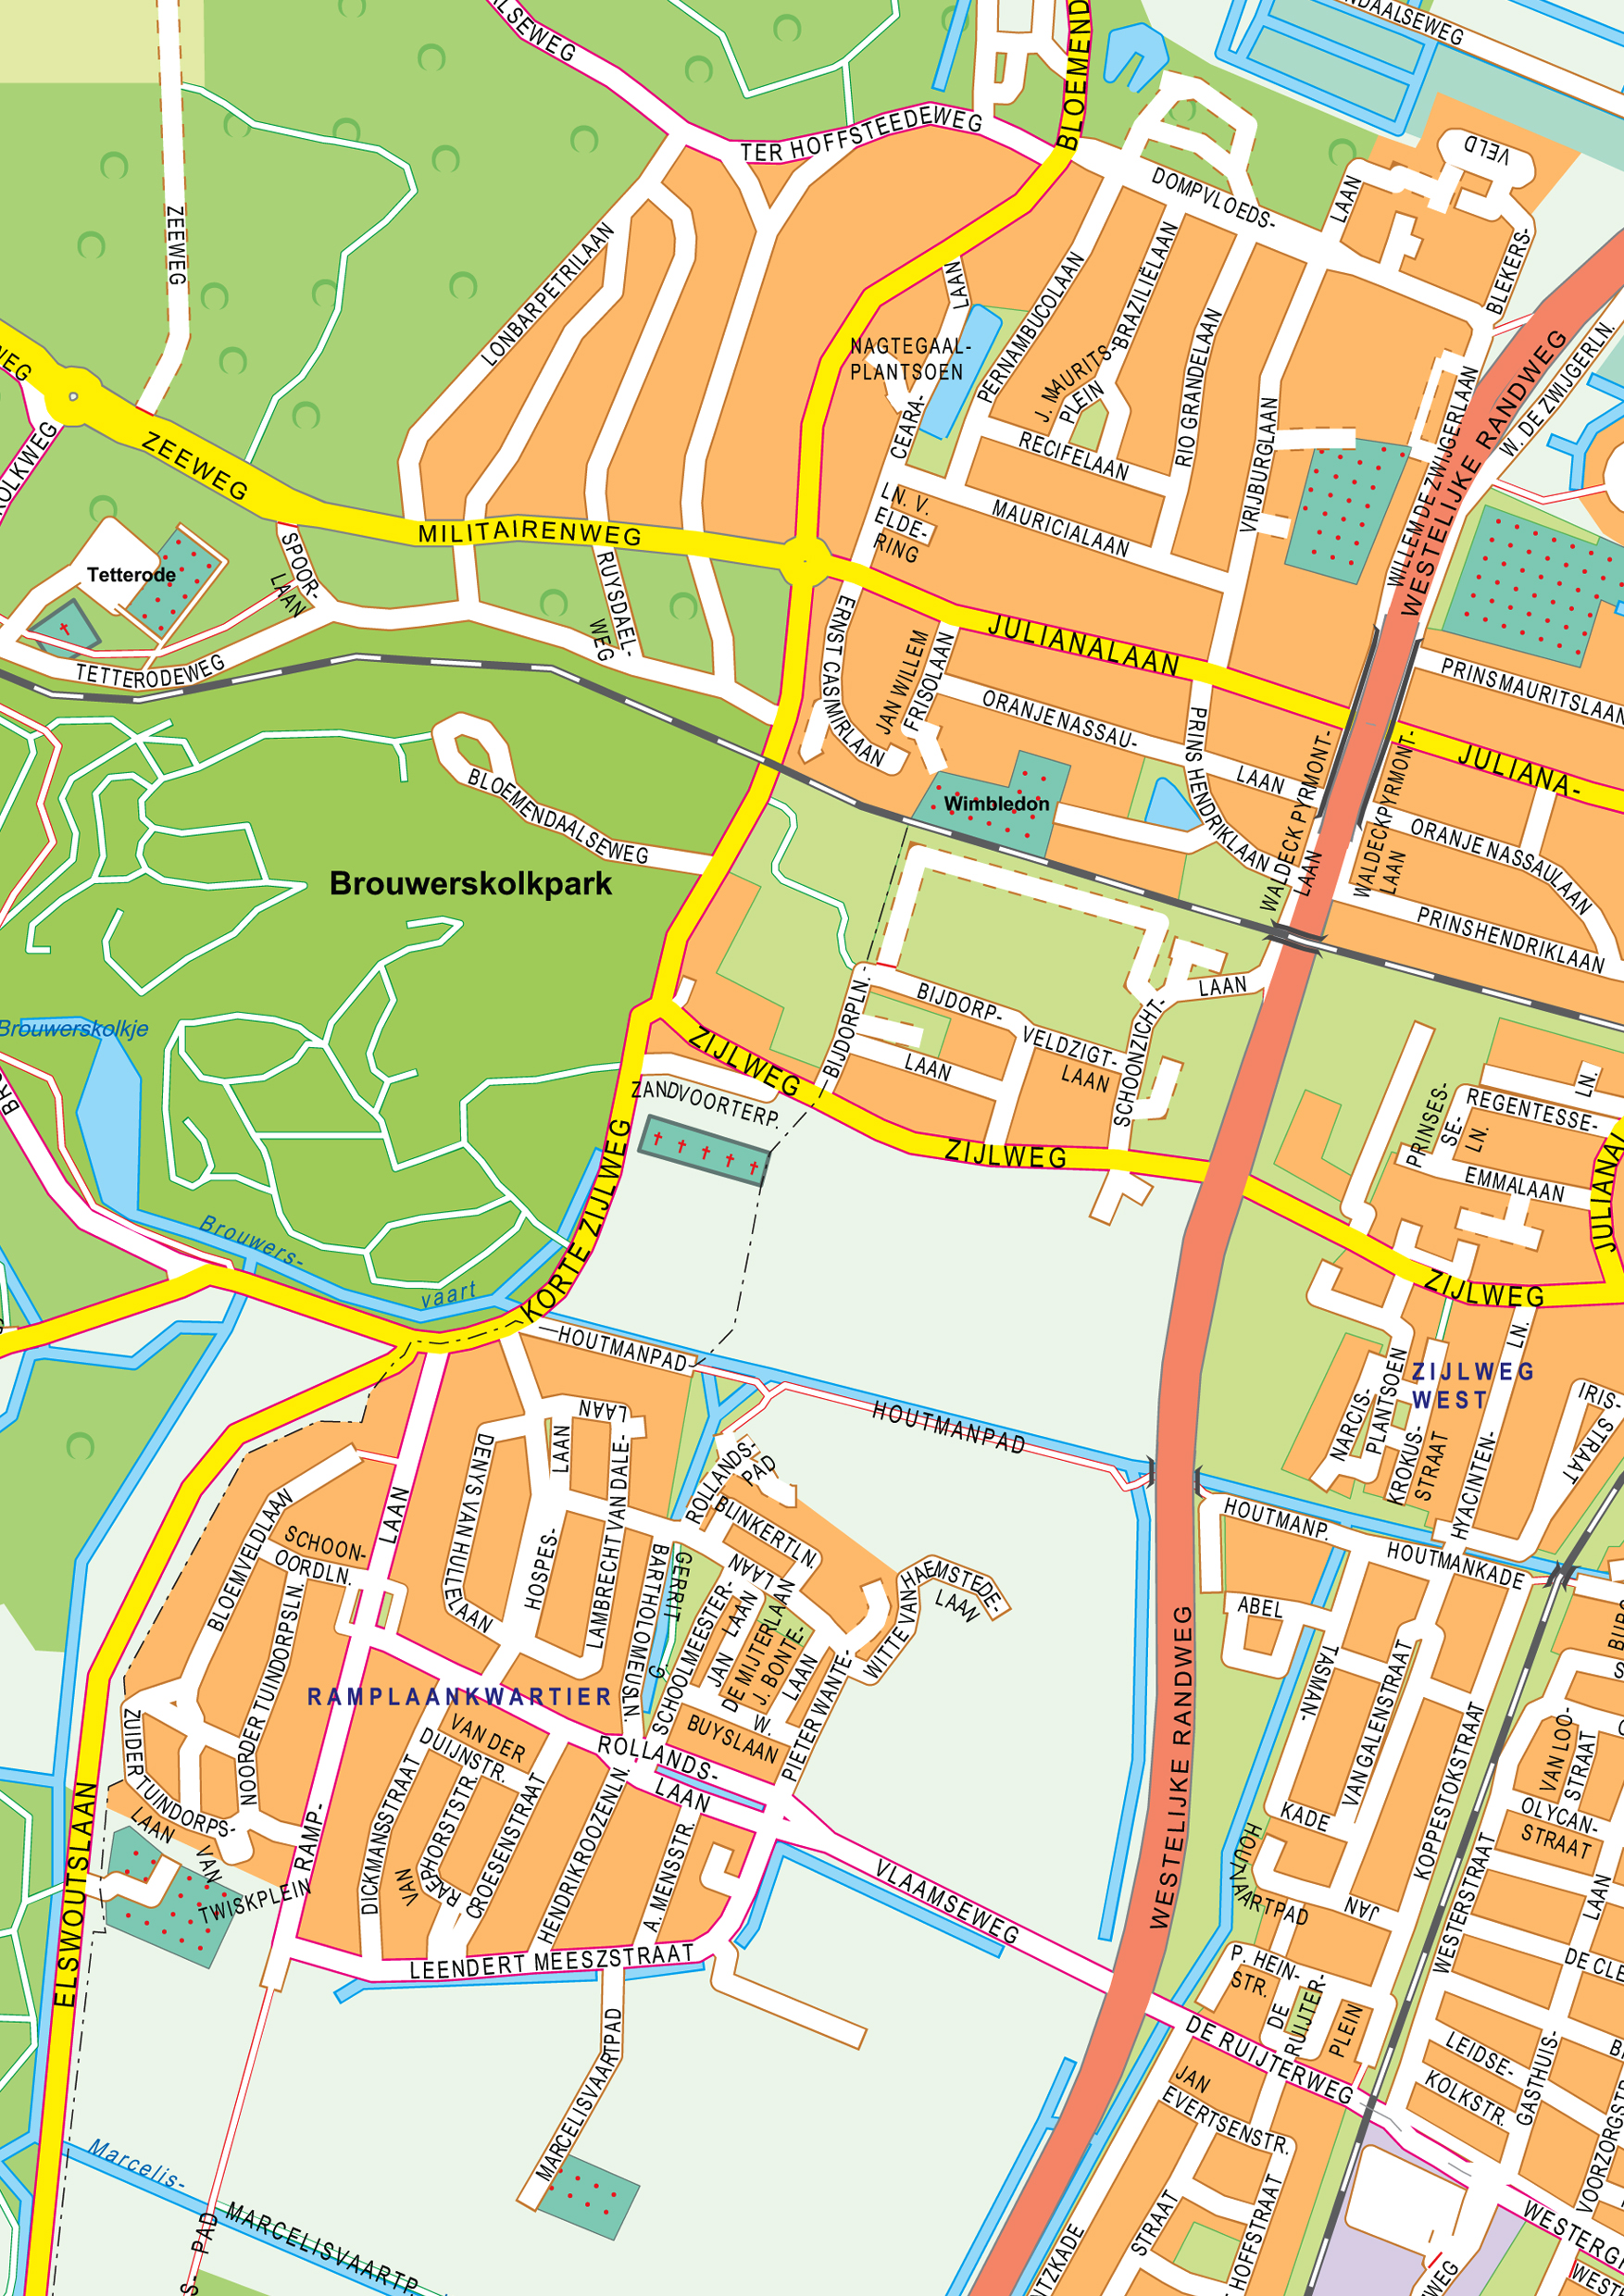 Digital City Map Haarlem 398 The World of Mapscom